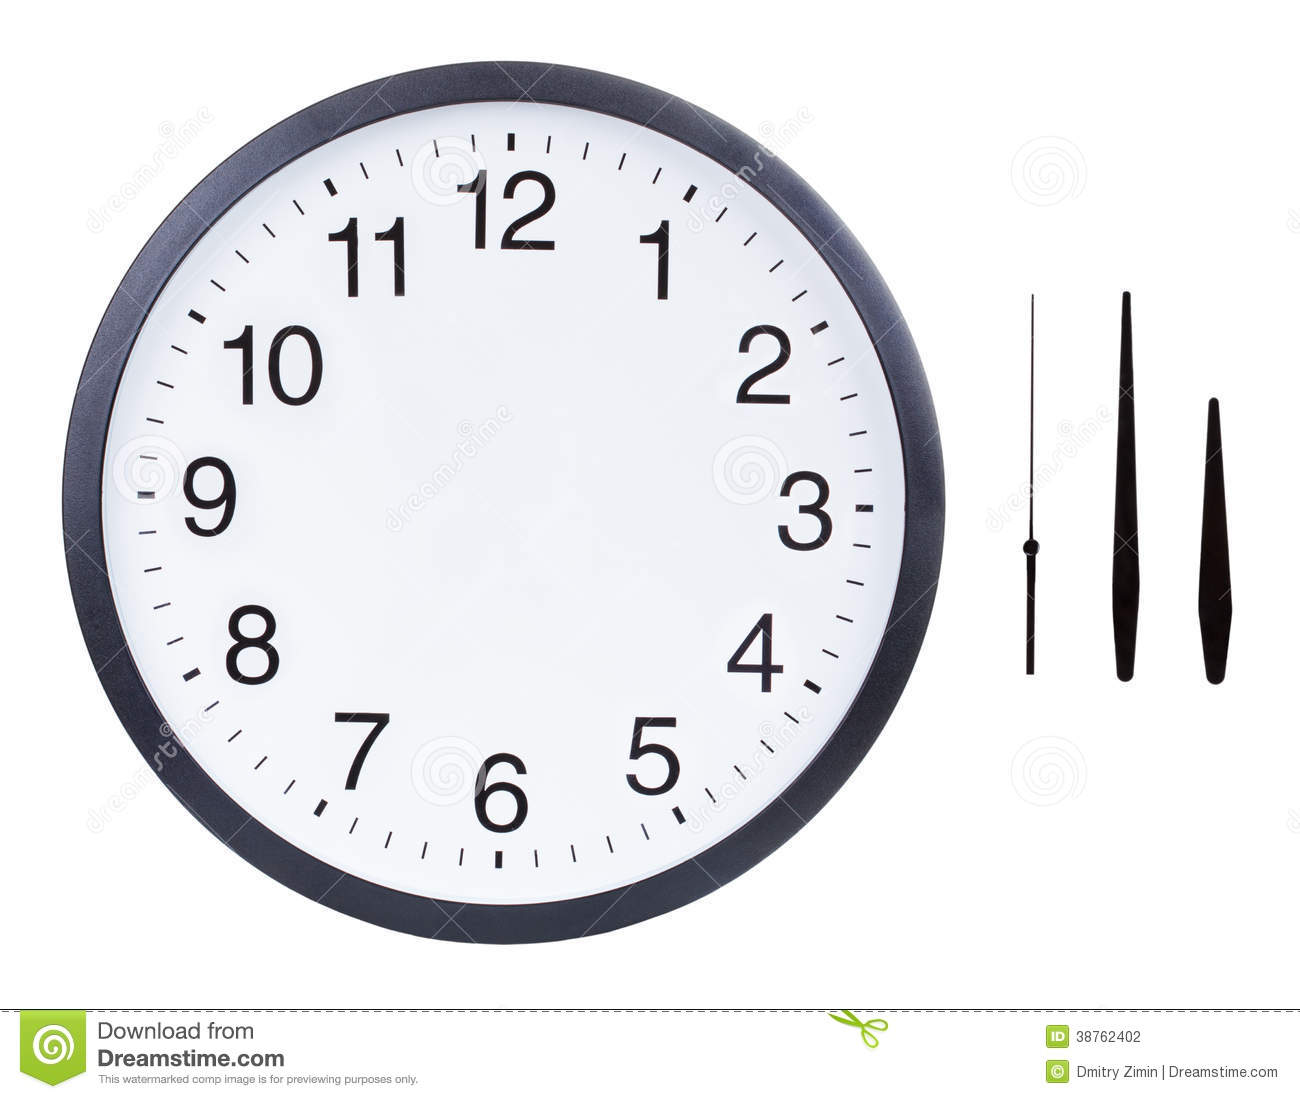 Clock with no hands clipart vector black and white library Analog clock clipart with no hands - ClipartFox vector black and white library